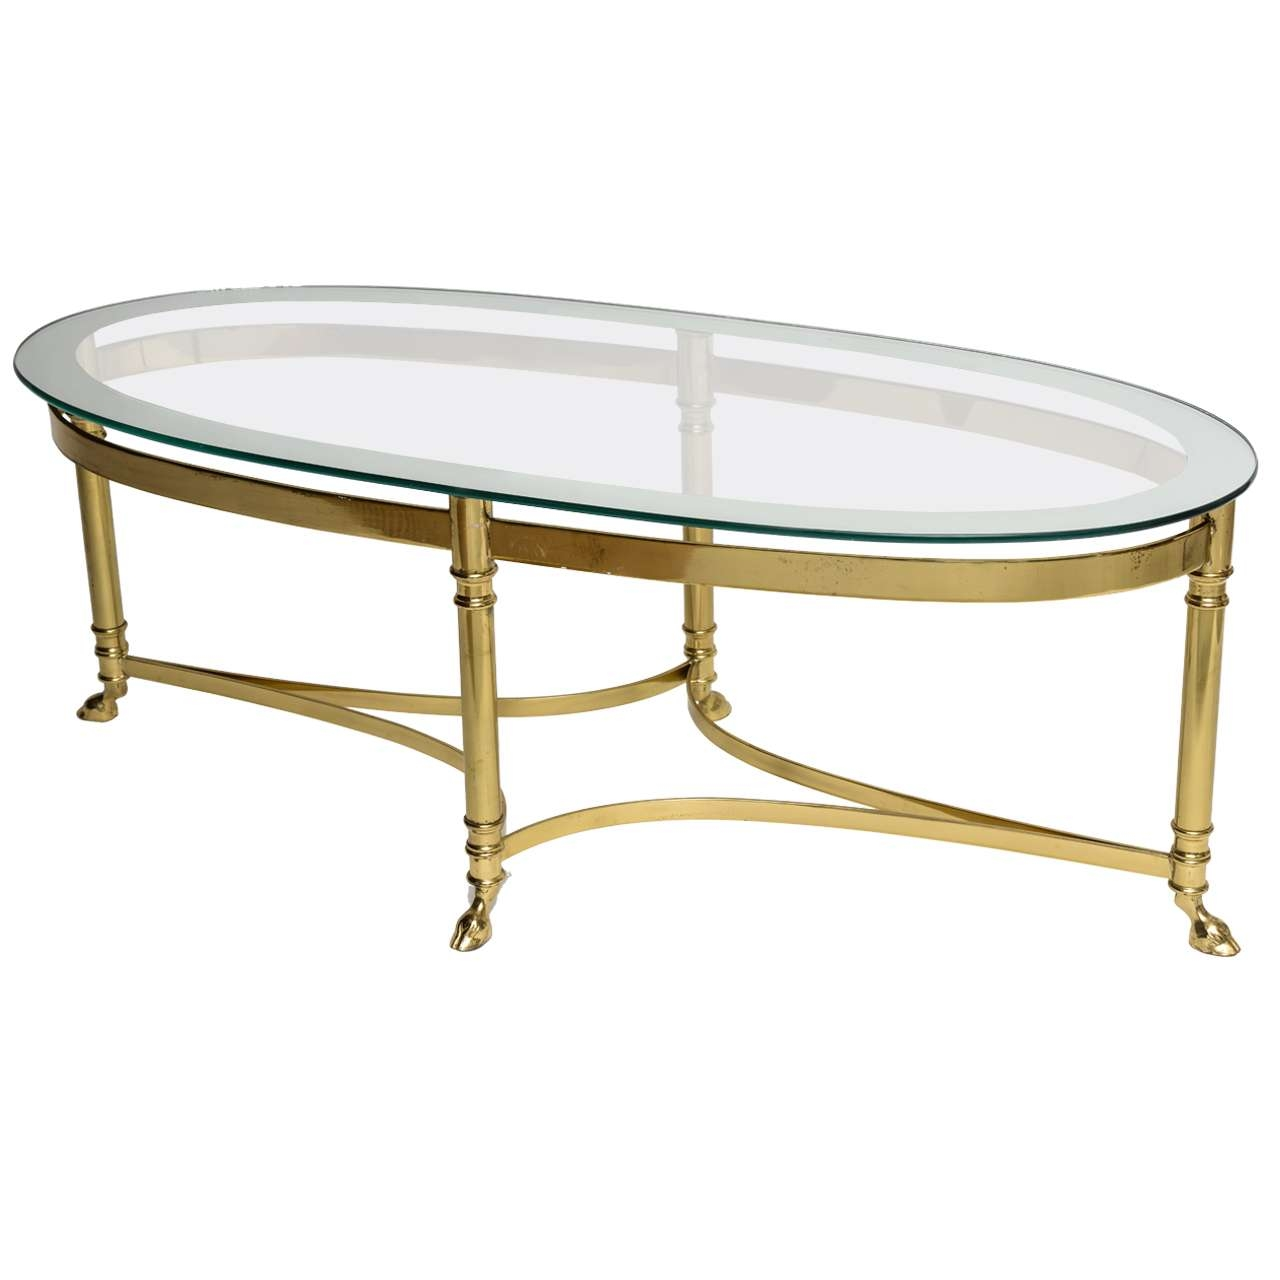 Trendy Vintage Glass Top Coffee Tables Inside Coffee Table: Oval Glass Top Coffee Table Glass For Table Tops (View 9 of 20)